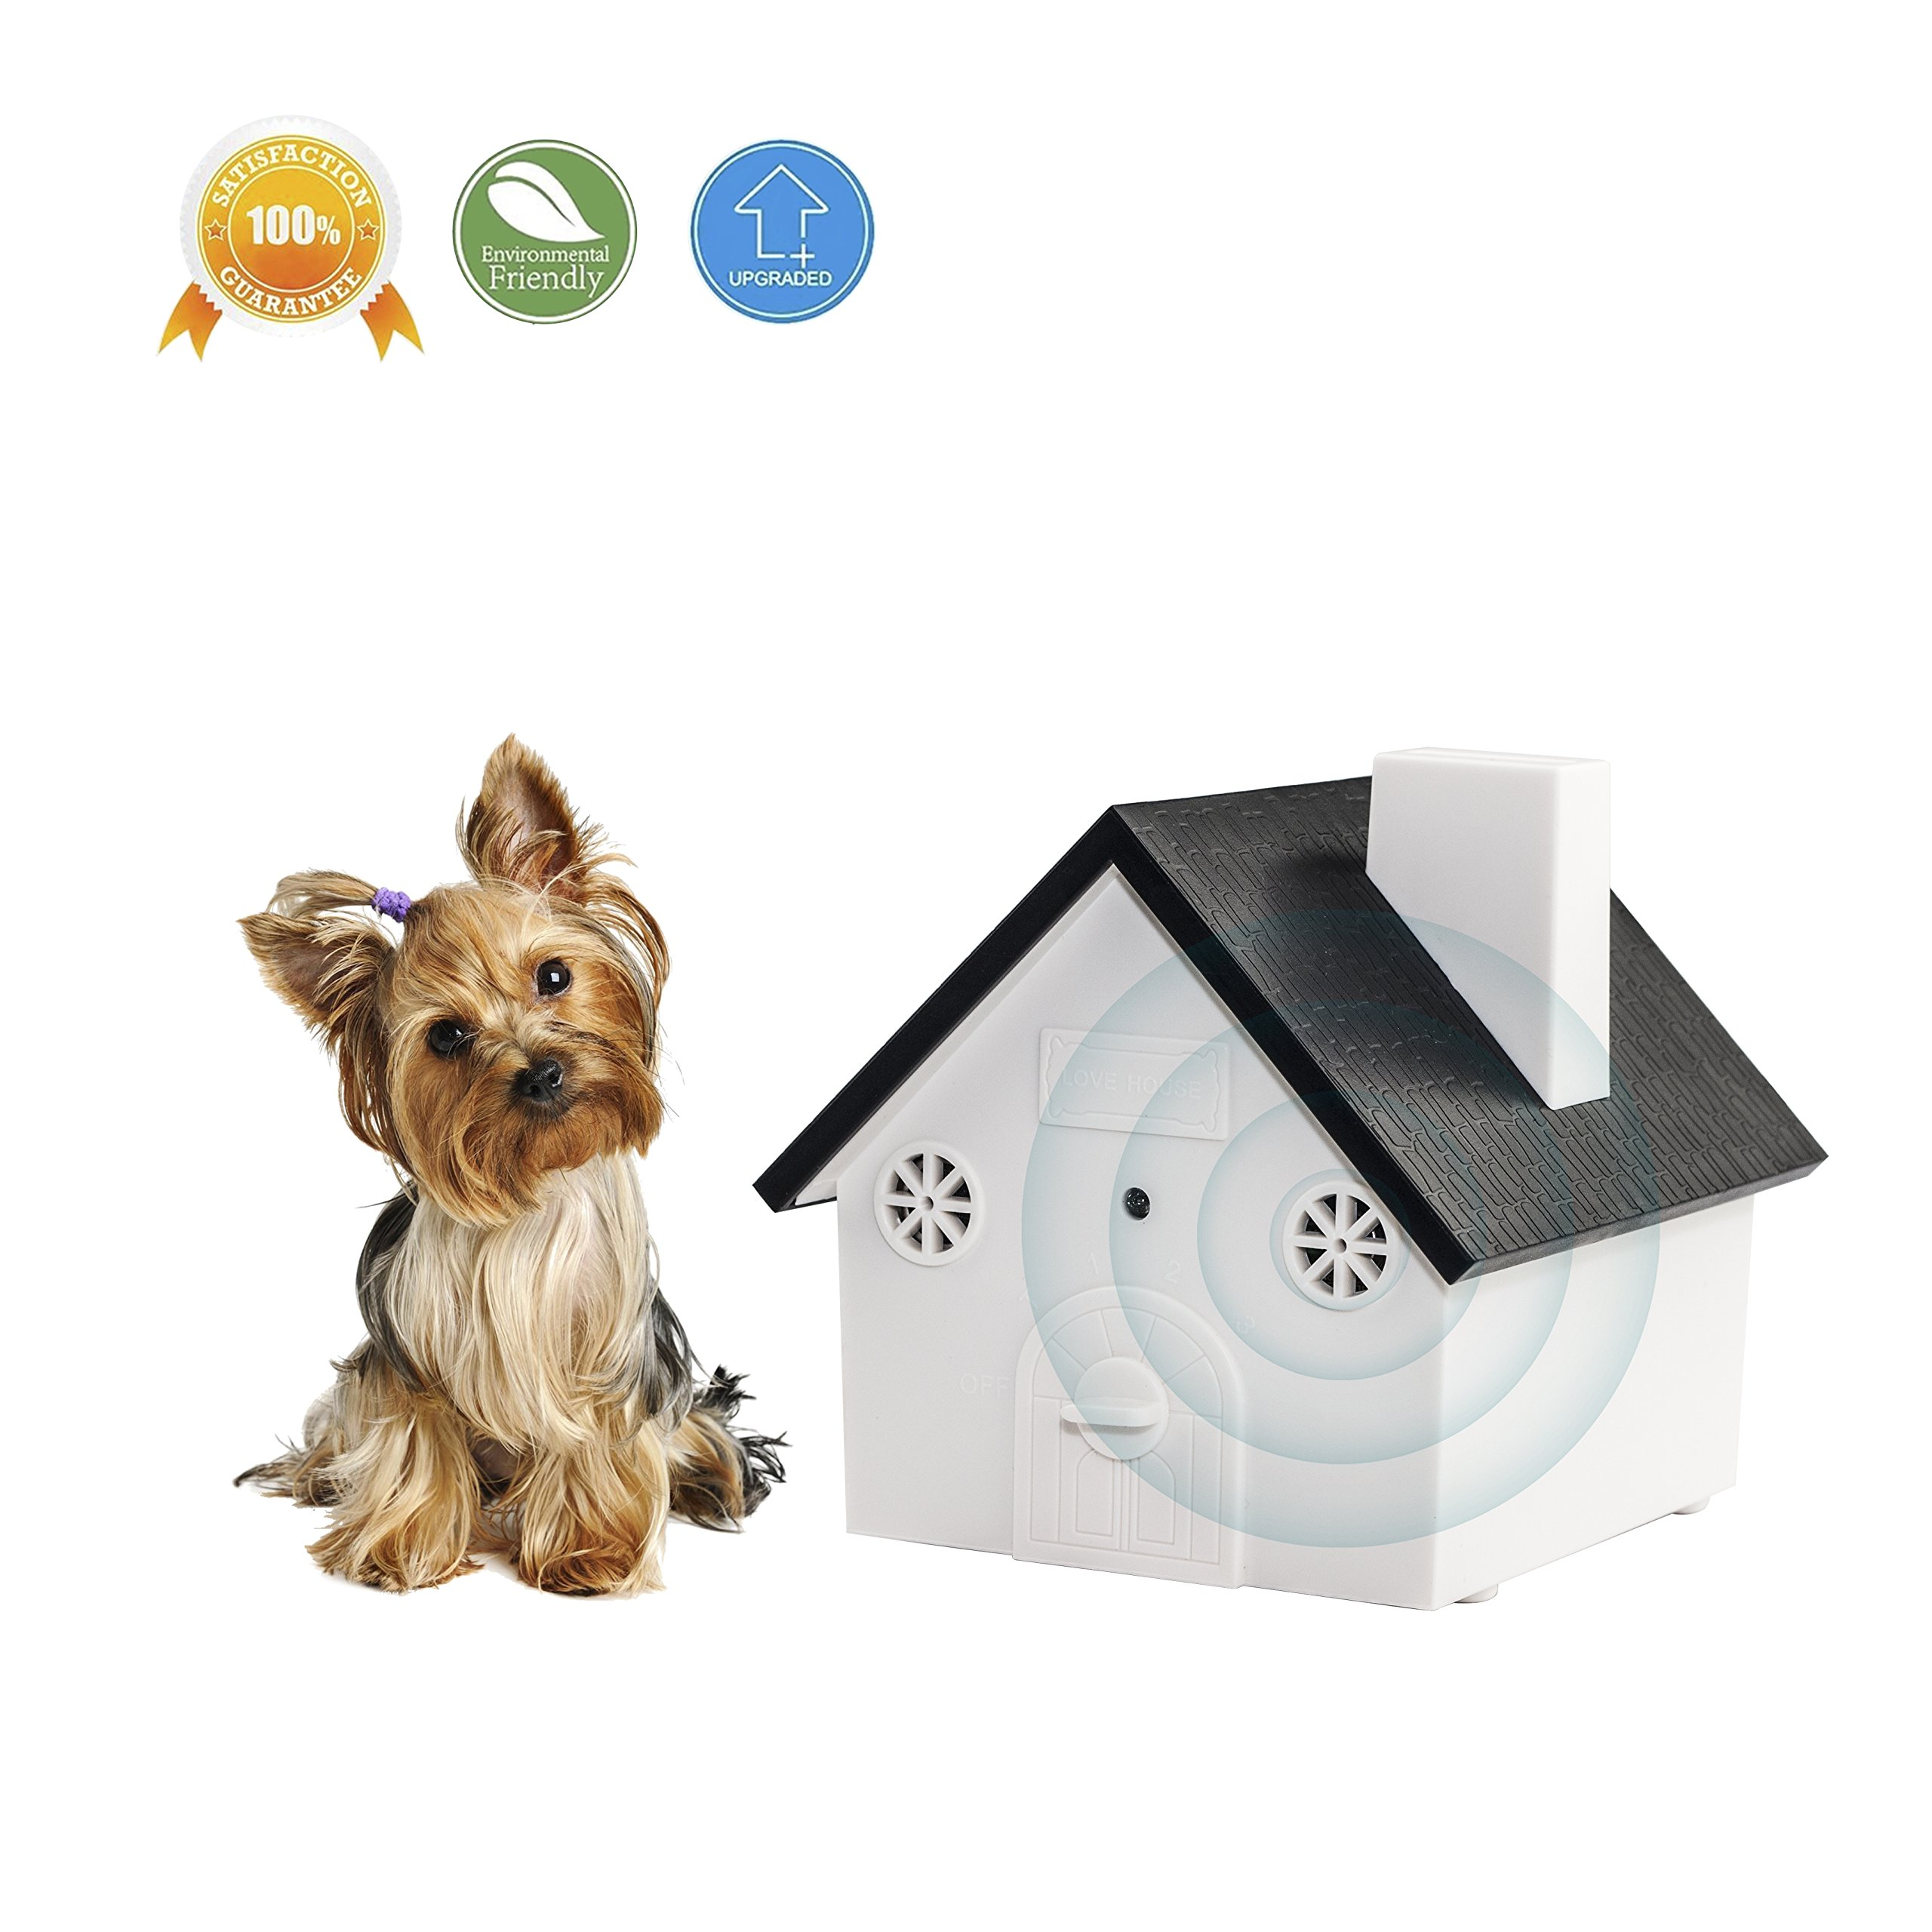 LT Ultrasonic Dog Bark Control Deterrents,Anti Barking Control Stop Barking,Outdoor Birdhouse up to 50 Feet Range with Easy Hanging Hanging or Mounting,Safe for Pets and Human[2018 UPGRADED]